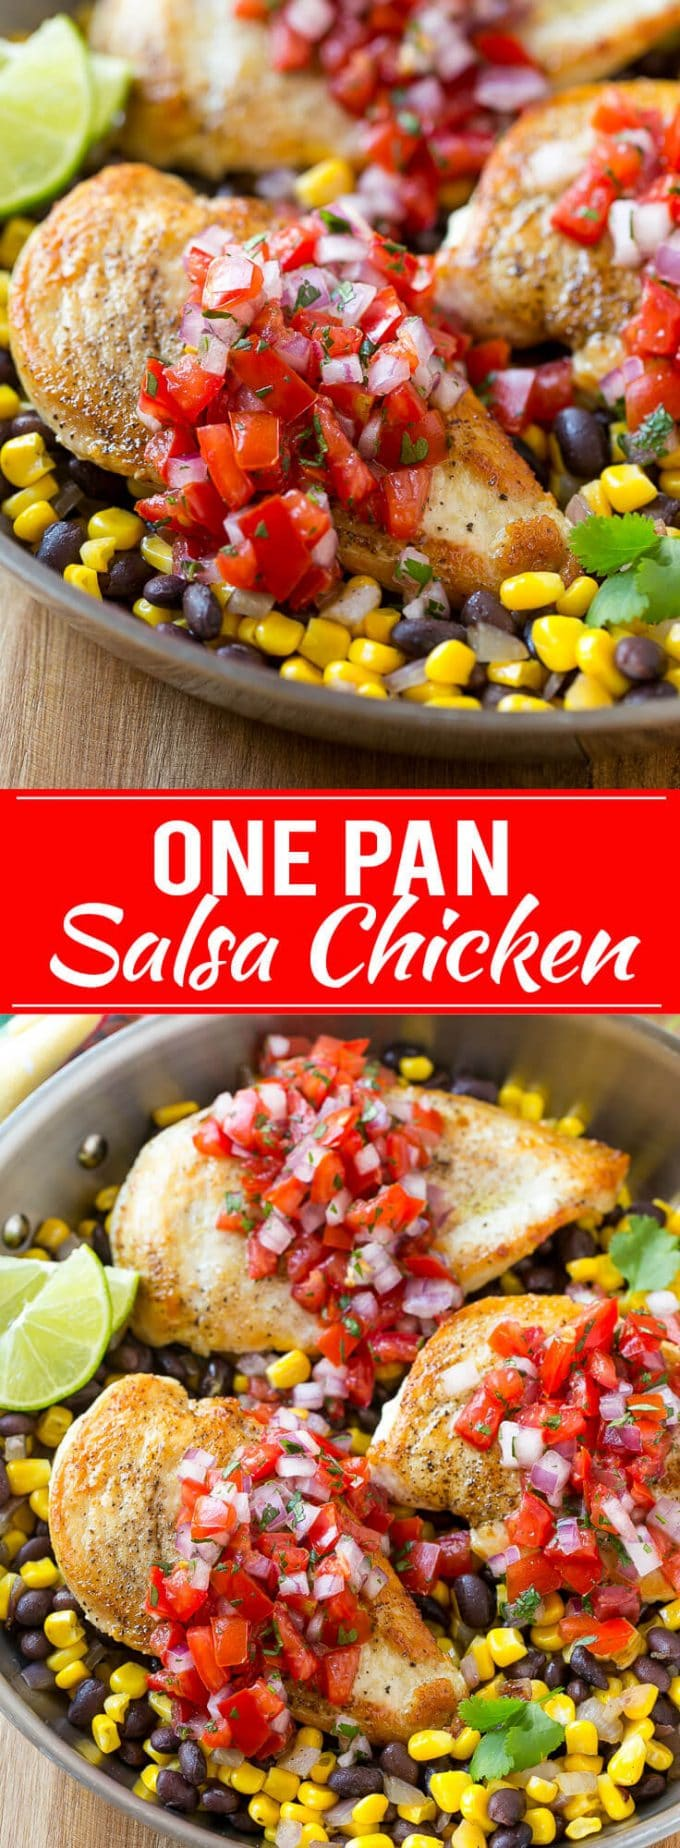 Salsa Chicken Recipe | Mexican Chicken | One Pot Meal | Healthy Chicken Recipe